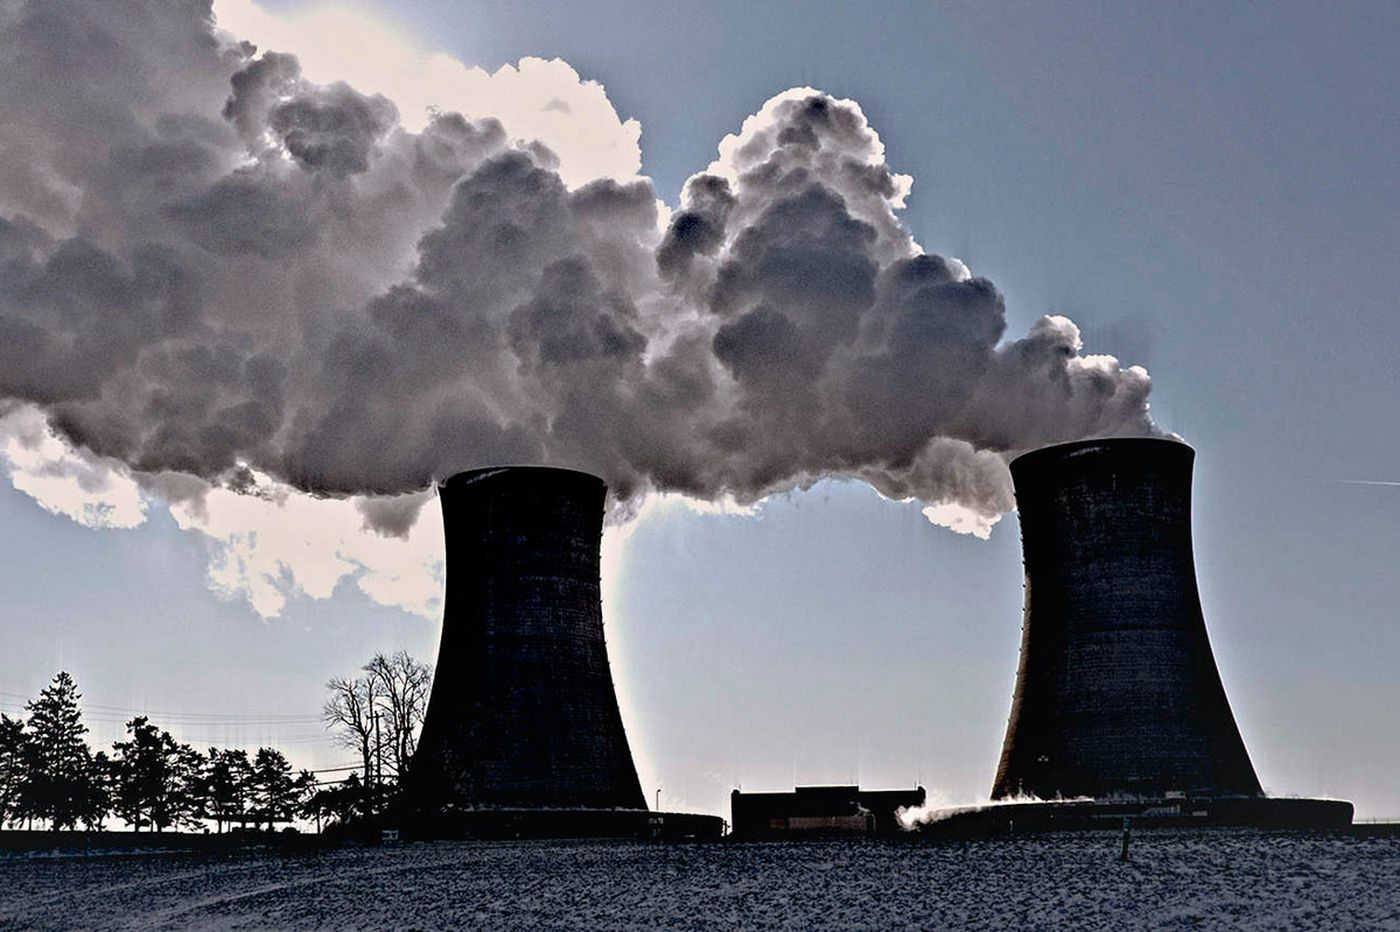 Nuclear plants contribute to greener energy future